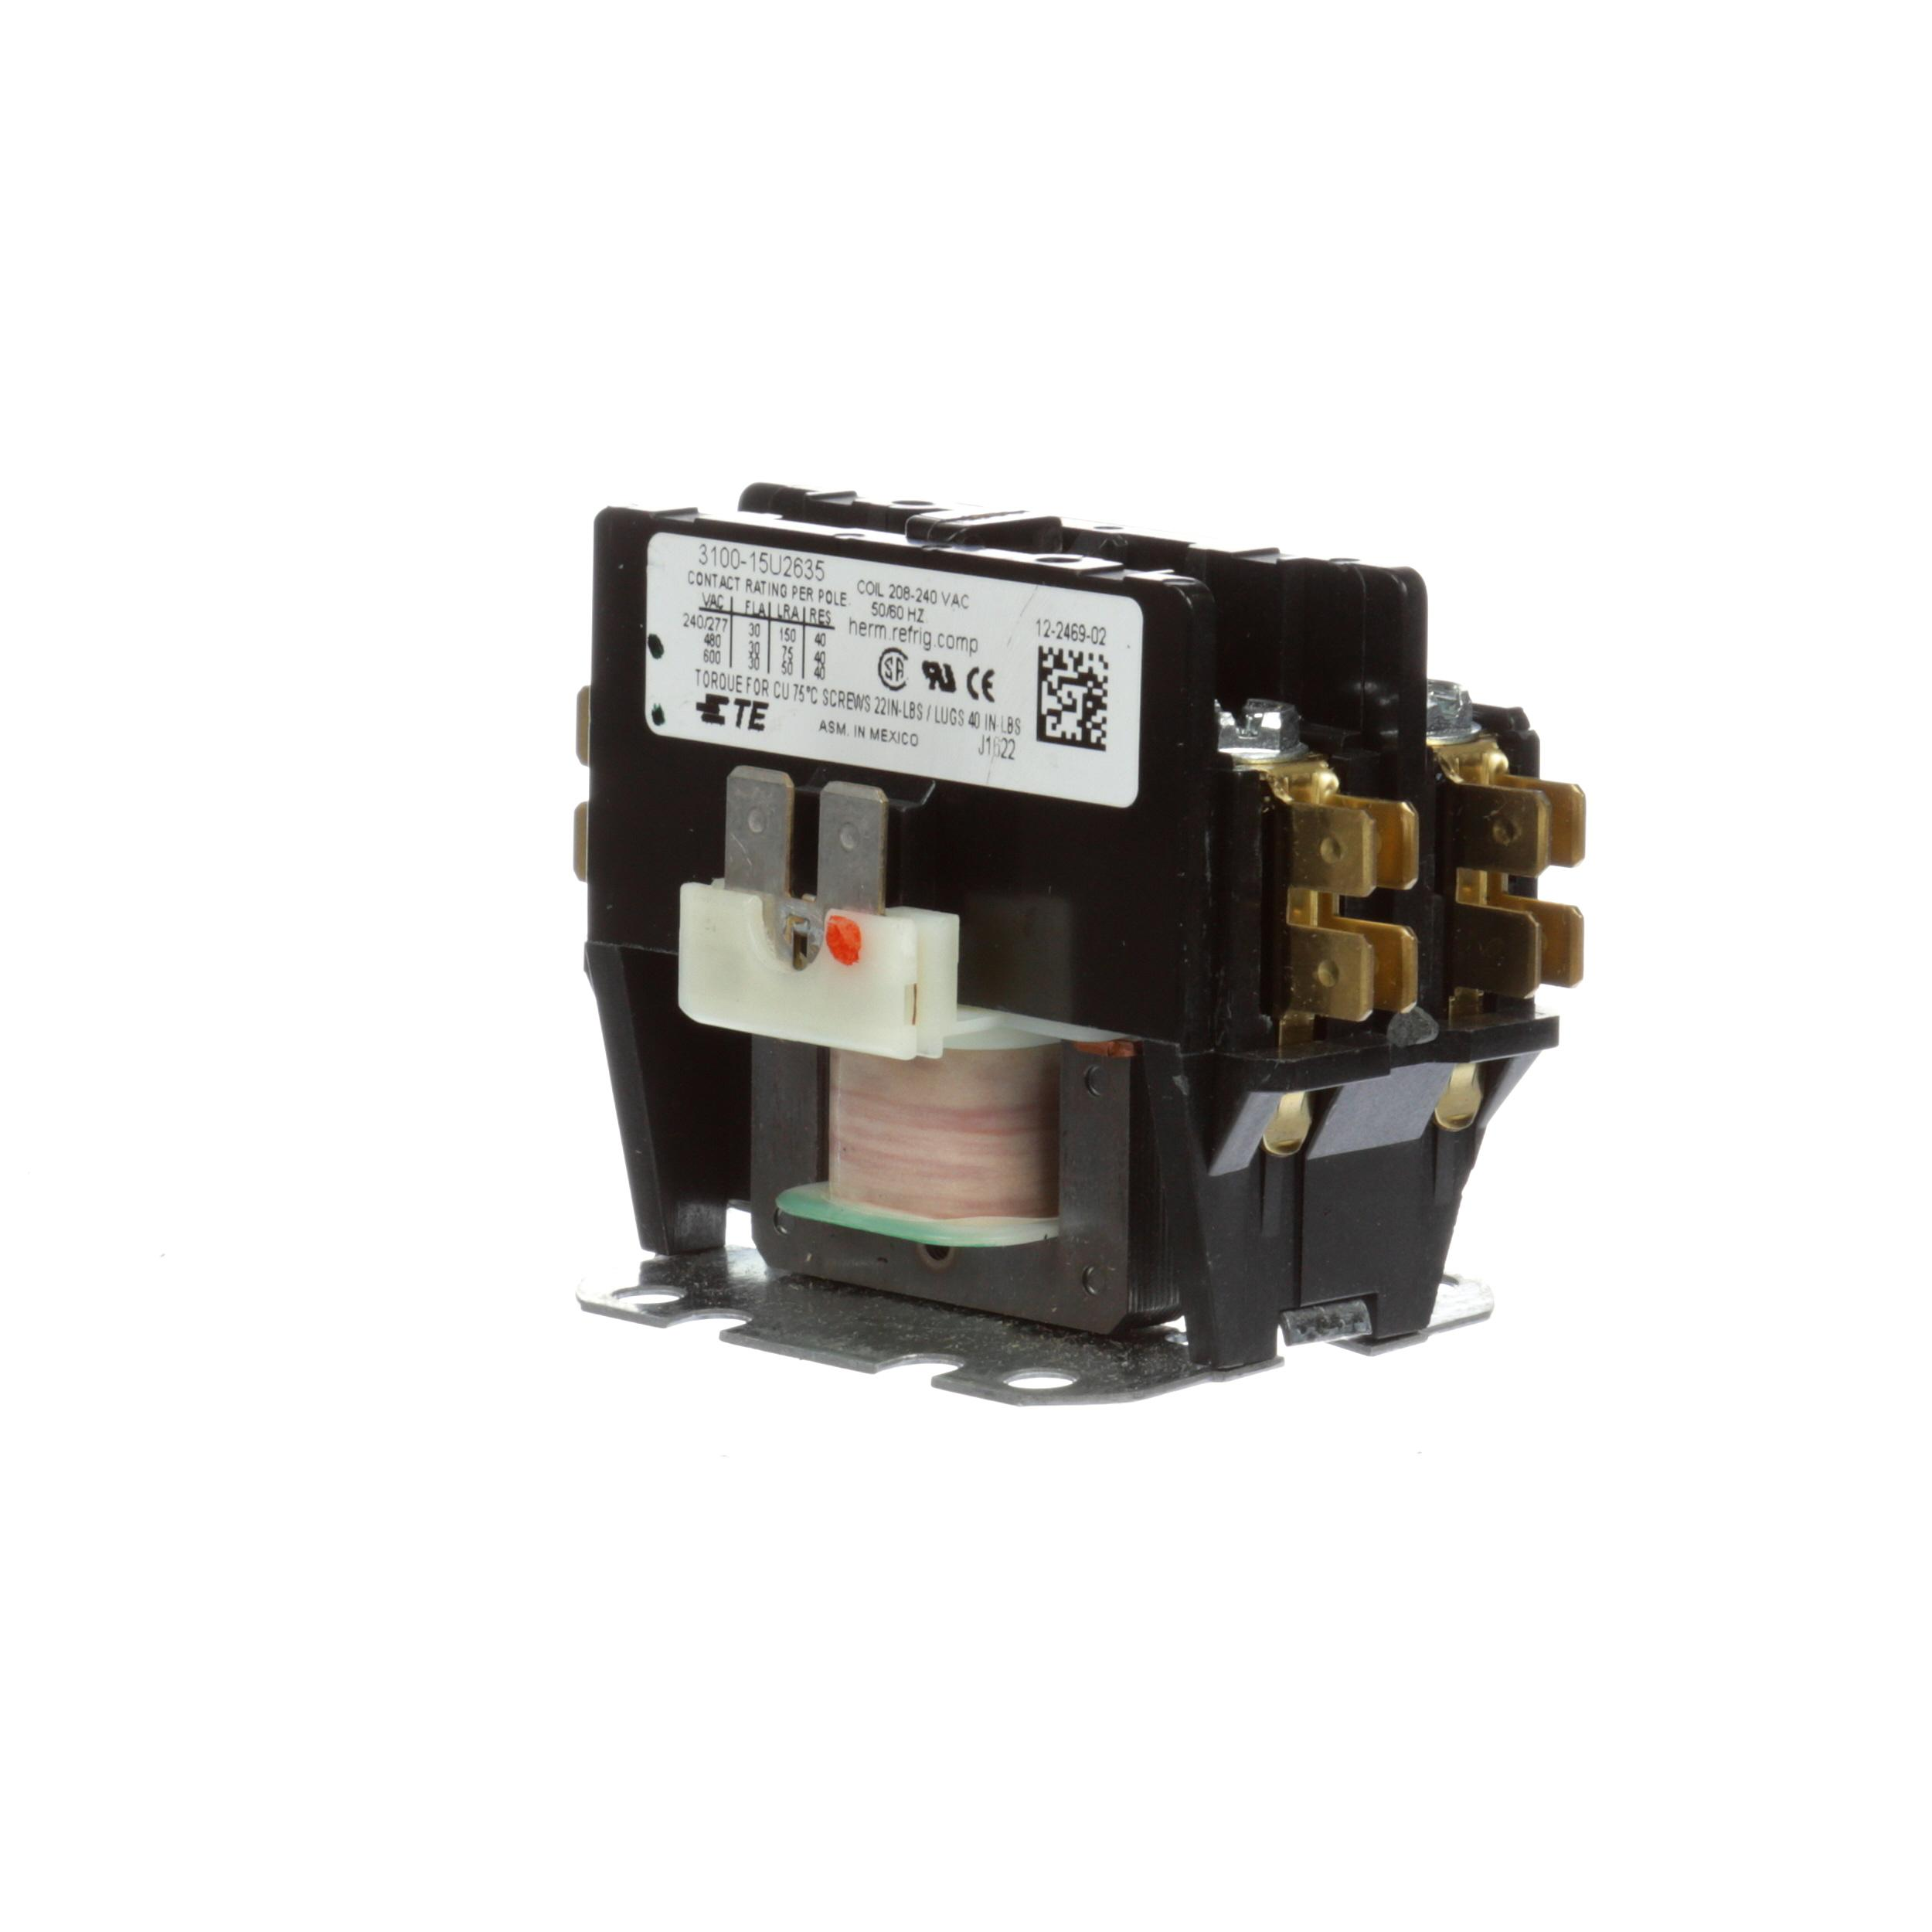 ICE-O-MATIC CONTACTOR 230V 30 AMP